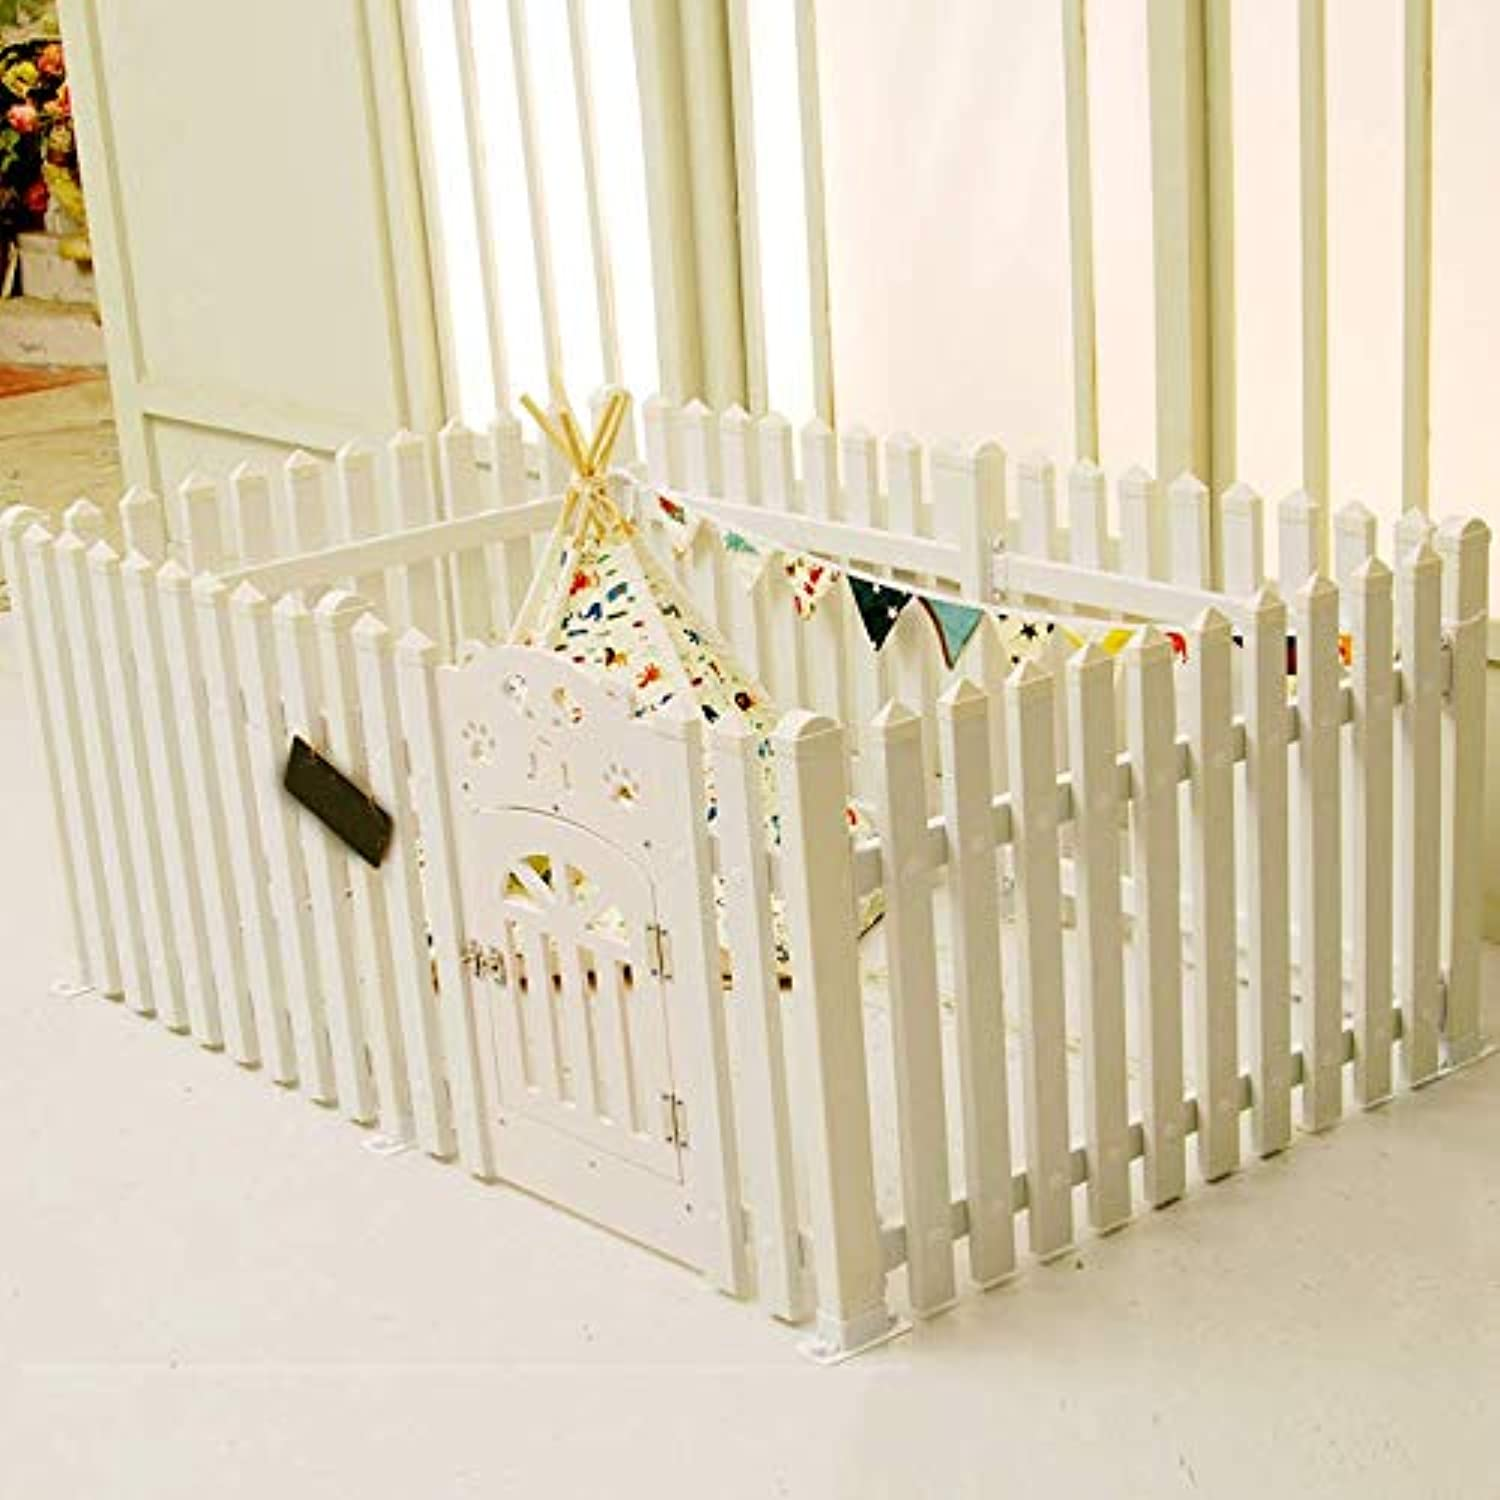 Pet fence, PVC indoor detachable dog cat fence, suitable for small and medium dogs  4 colors (100  80  70cm)